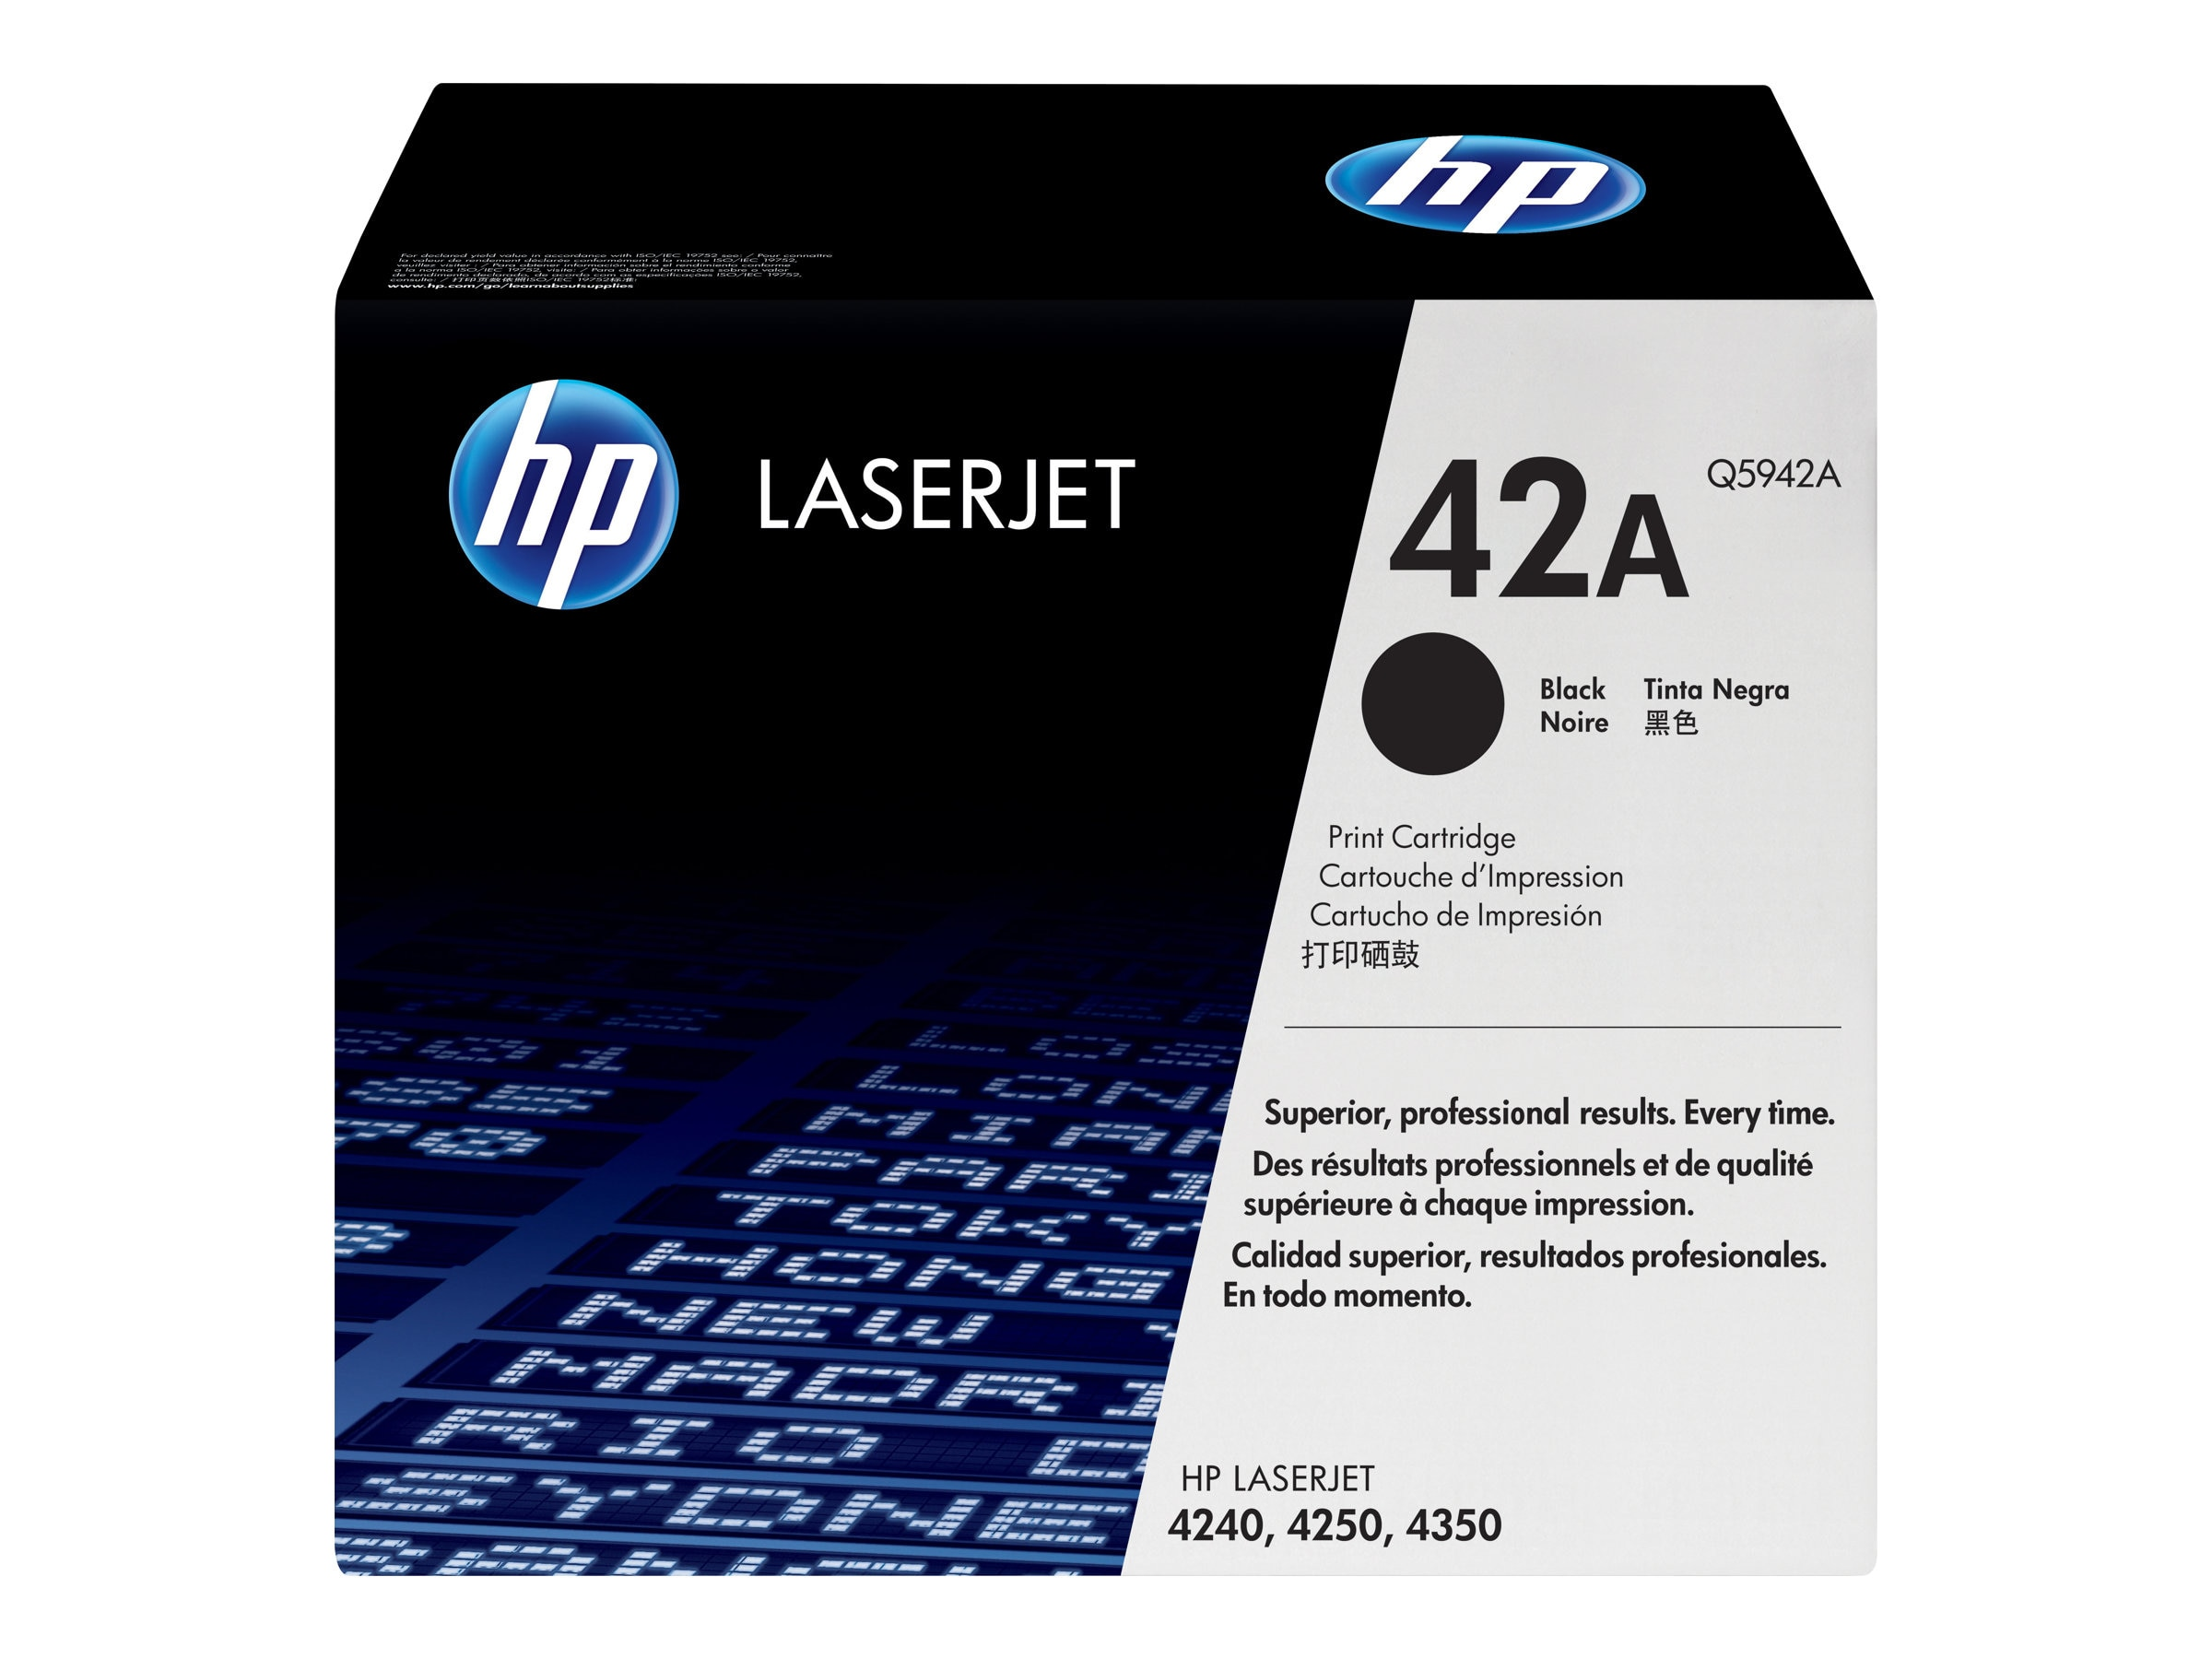 HP 42A (Q5942A) Black Original LaserJet Toner Cartridge for HP LaserJet 4240, 4250 & 4350 Printers